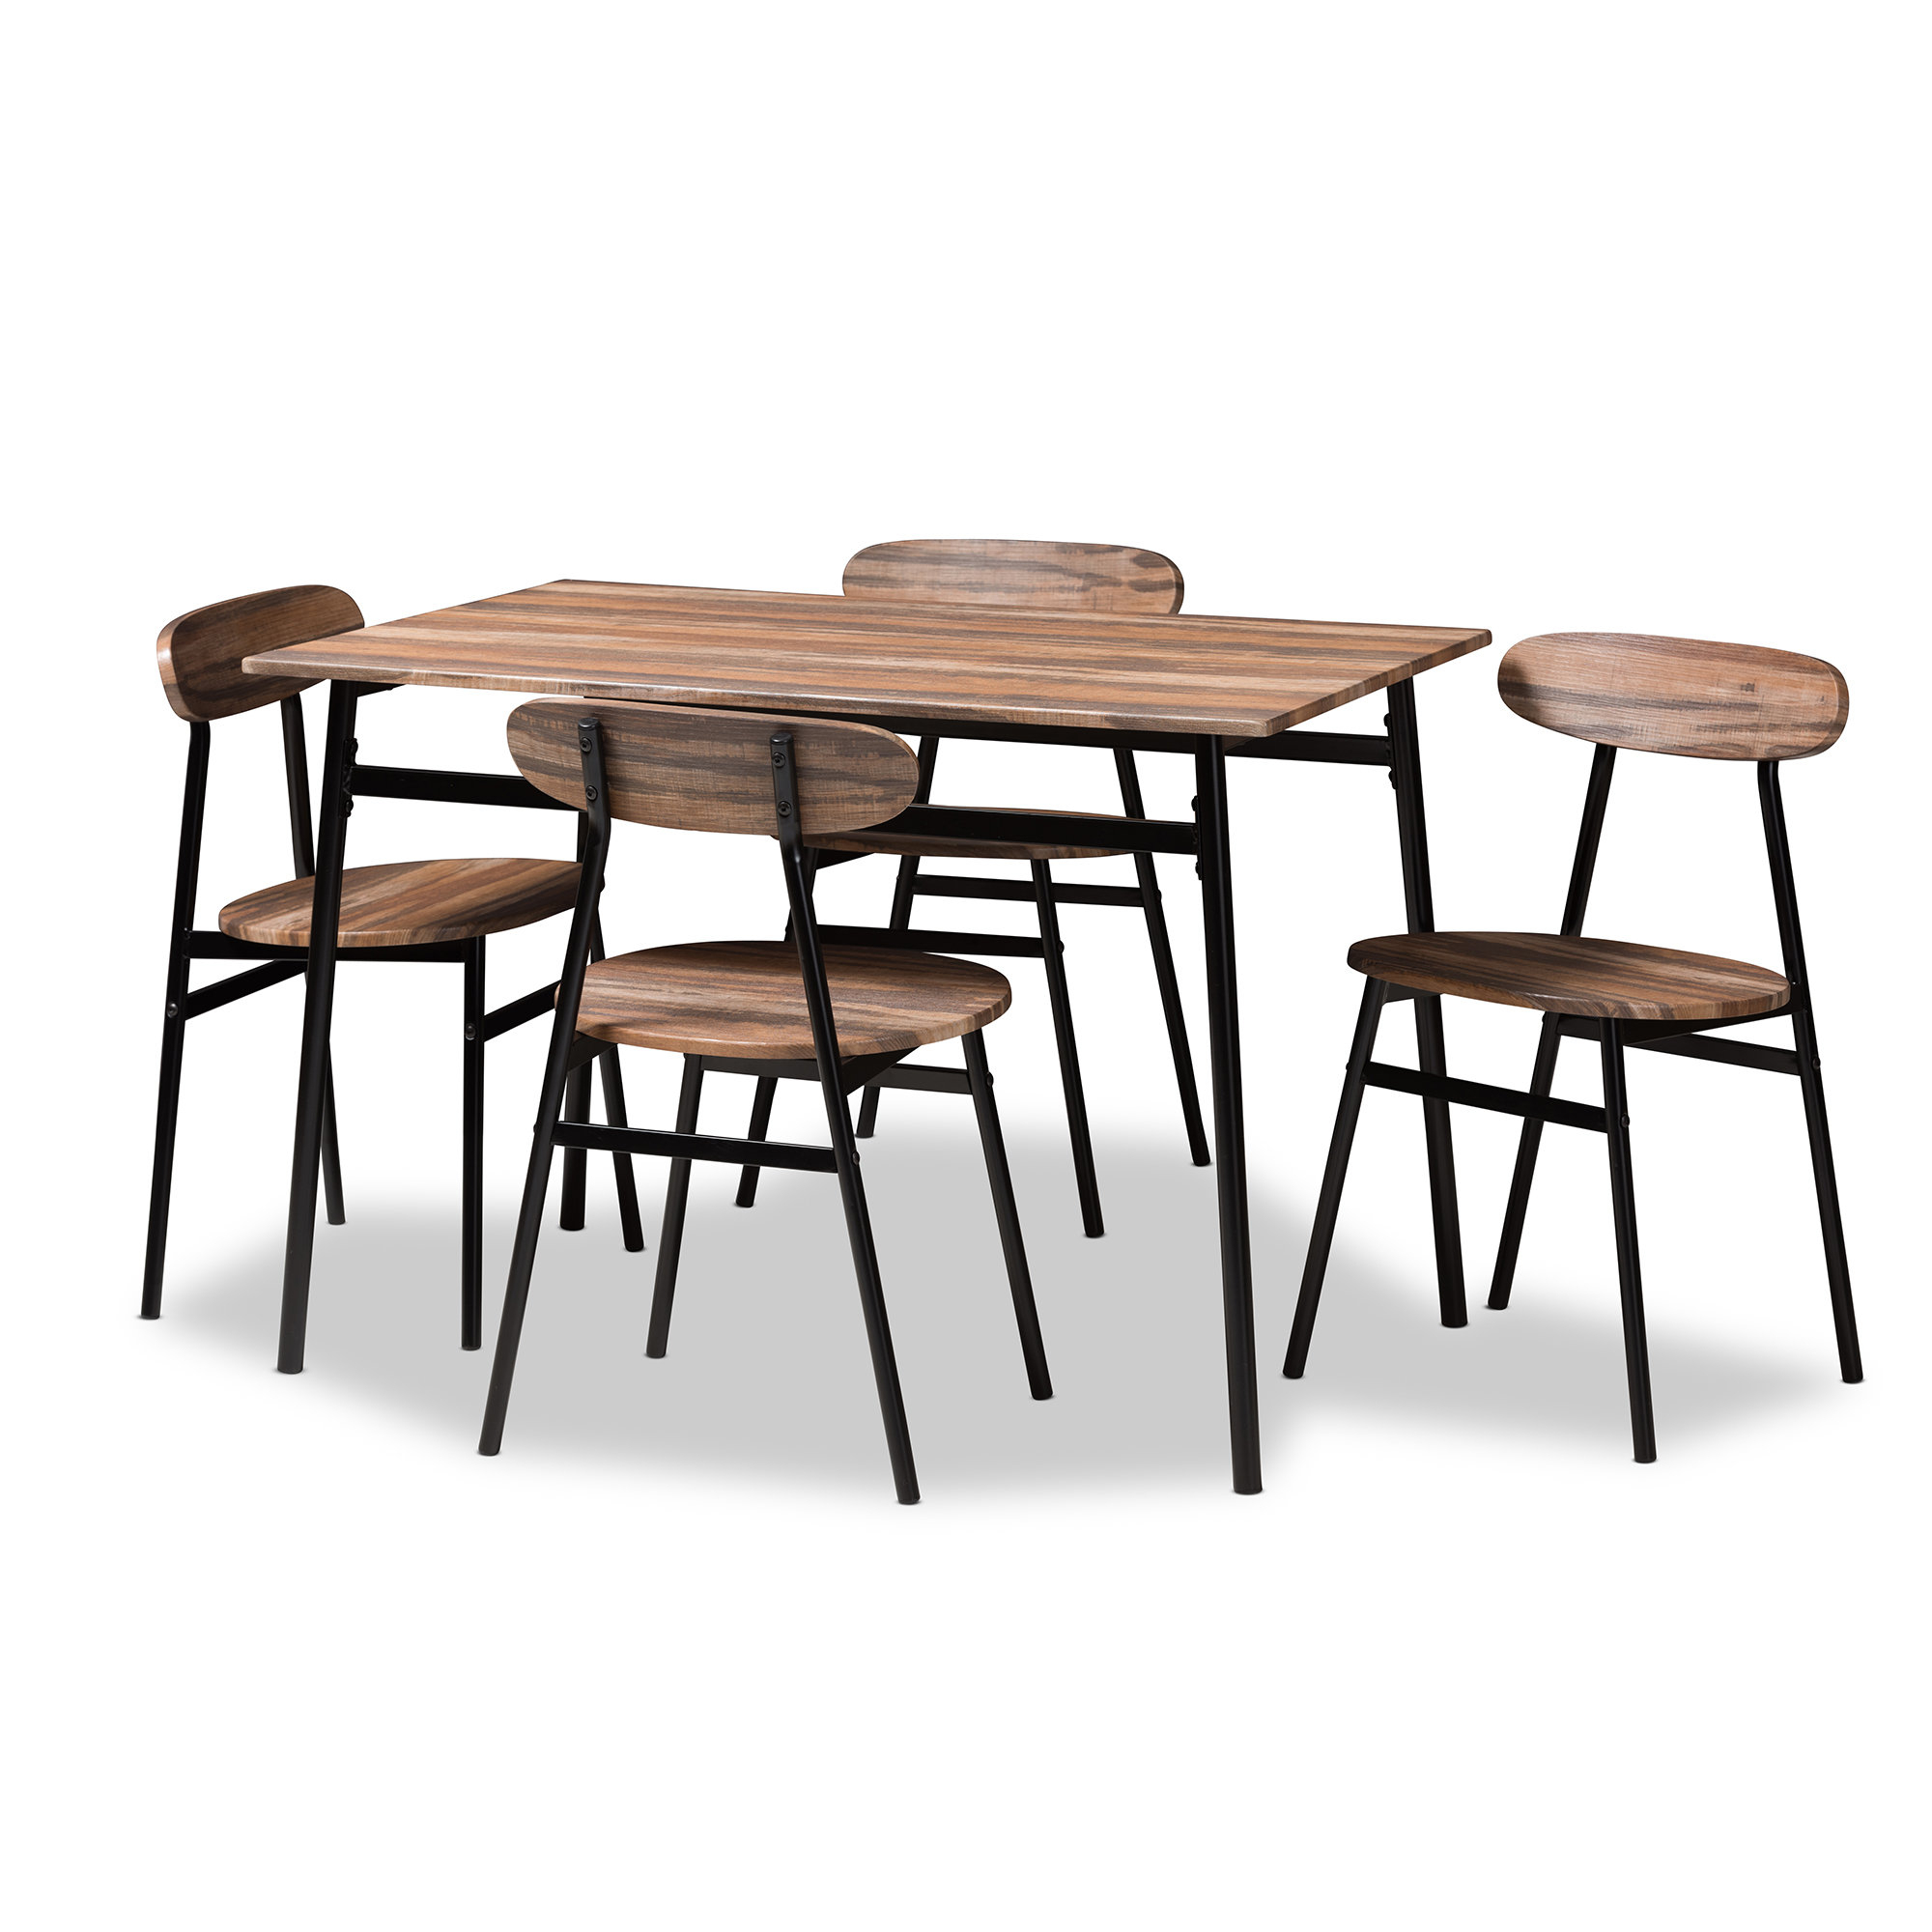 Telauges 5 Piece Dining Set Regarding Most Recently Released Taulbee 5 Piece Dining Sets (View 19 of 20)